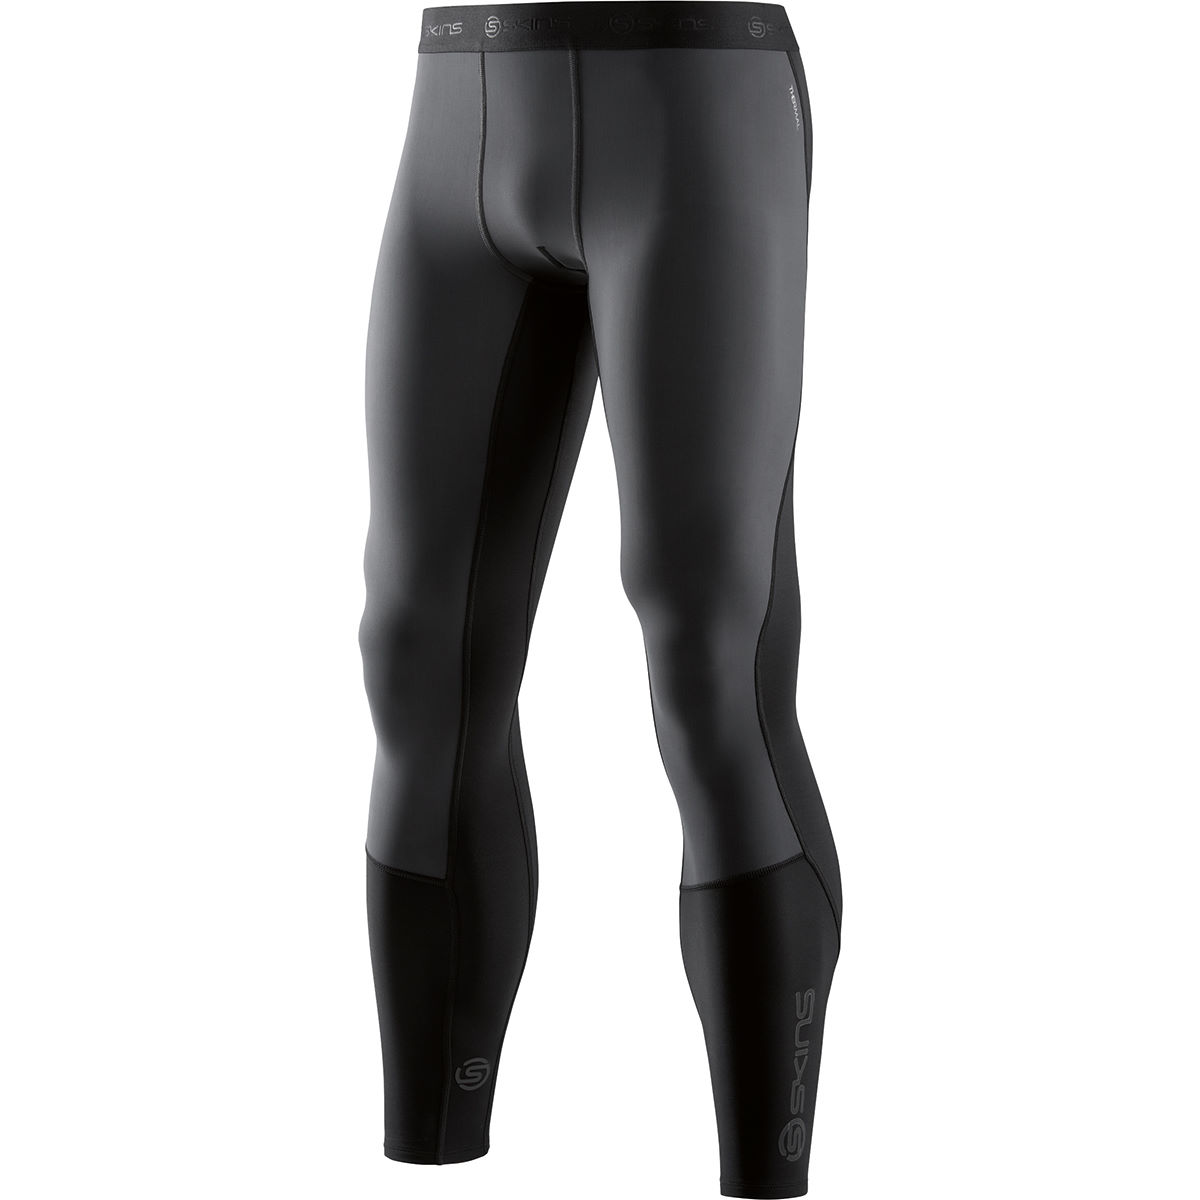 Cuissard long SKINS Thermal (coupe-vent) - S Noir